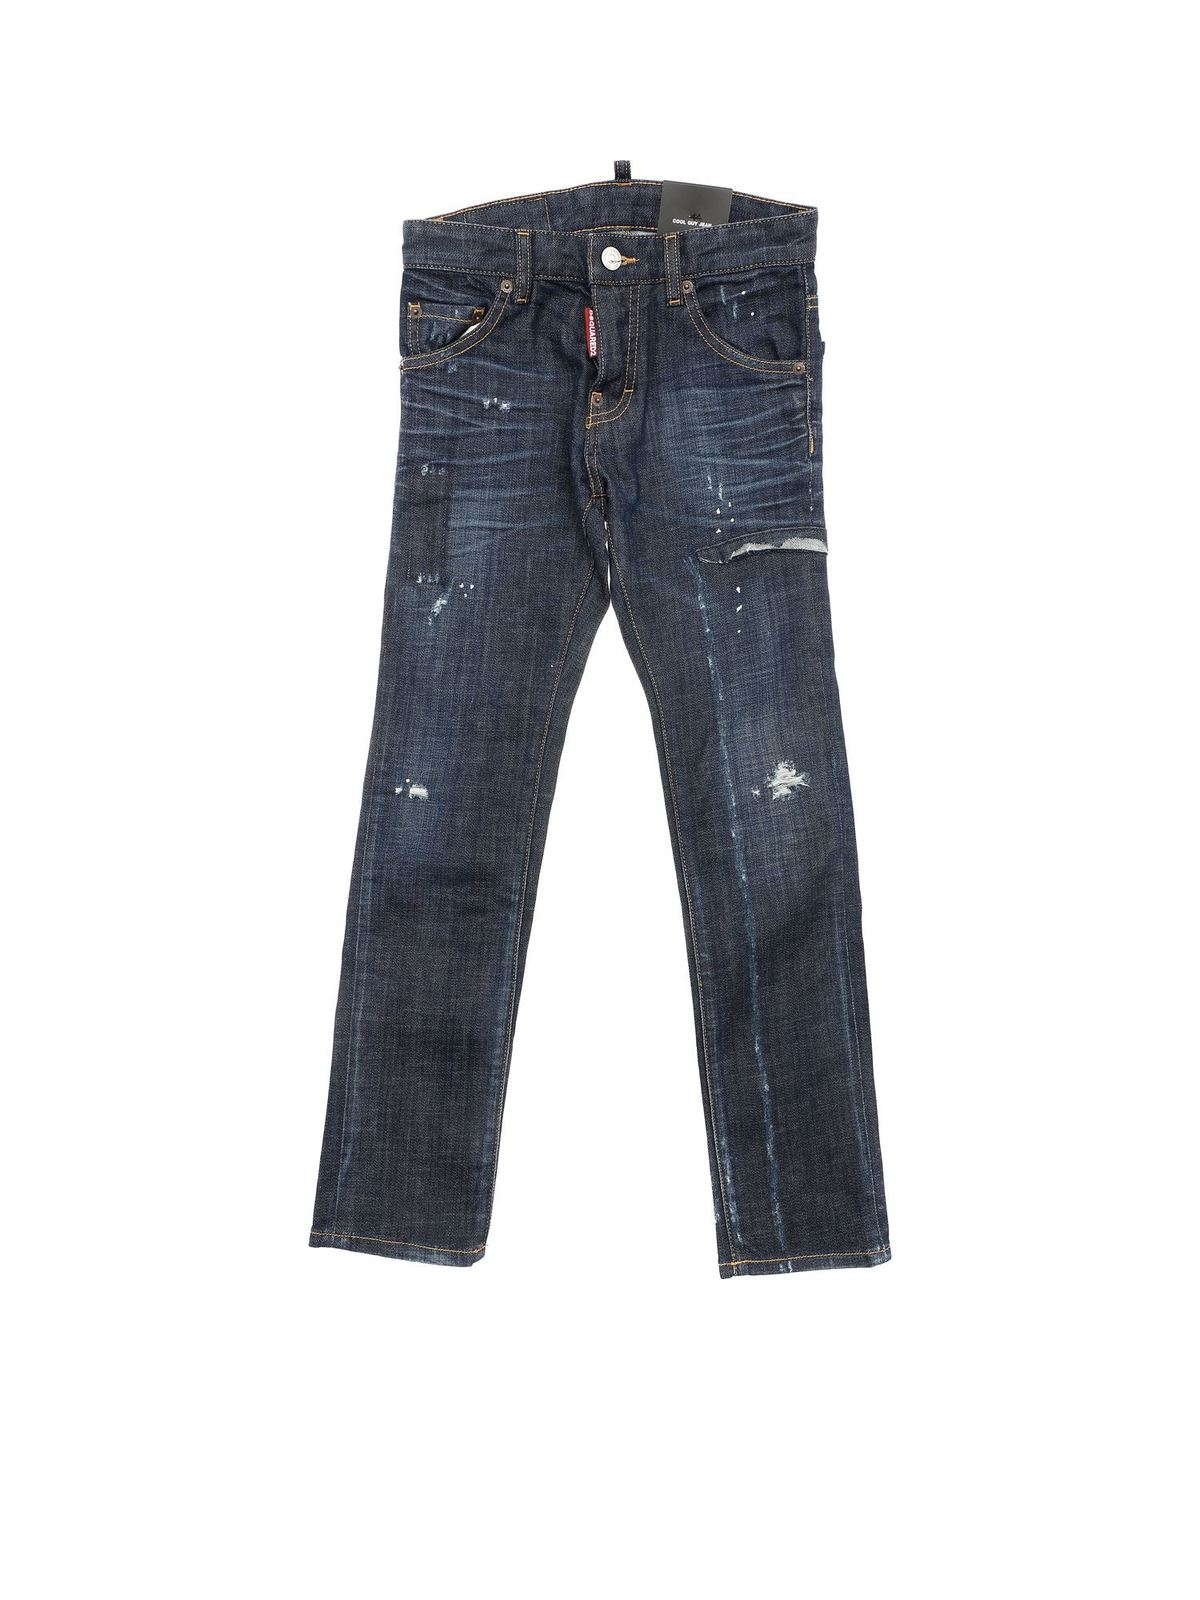 Dsquared2 COOL GUY JEANS IN BLUE